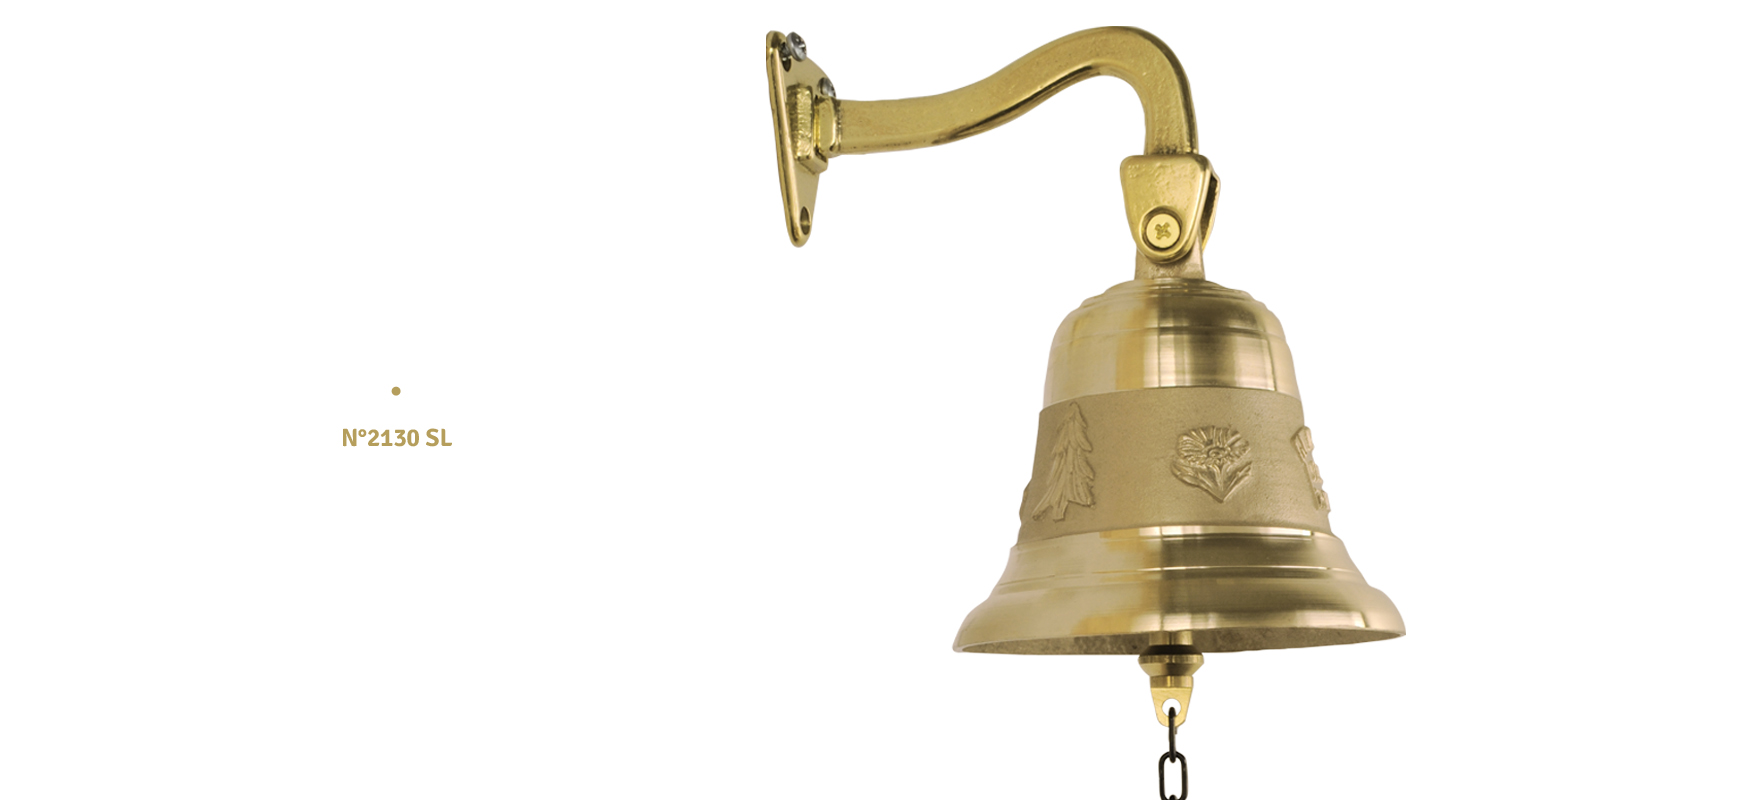 Bell with brass support